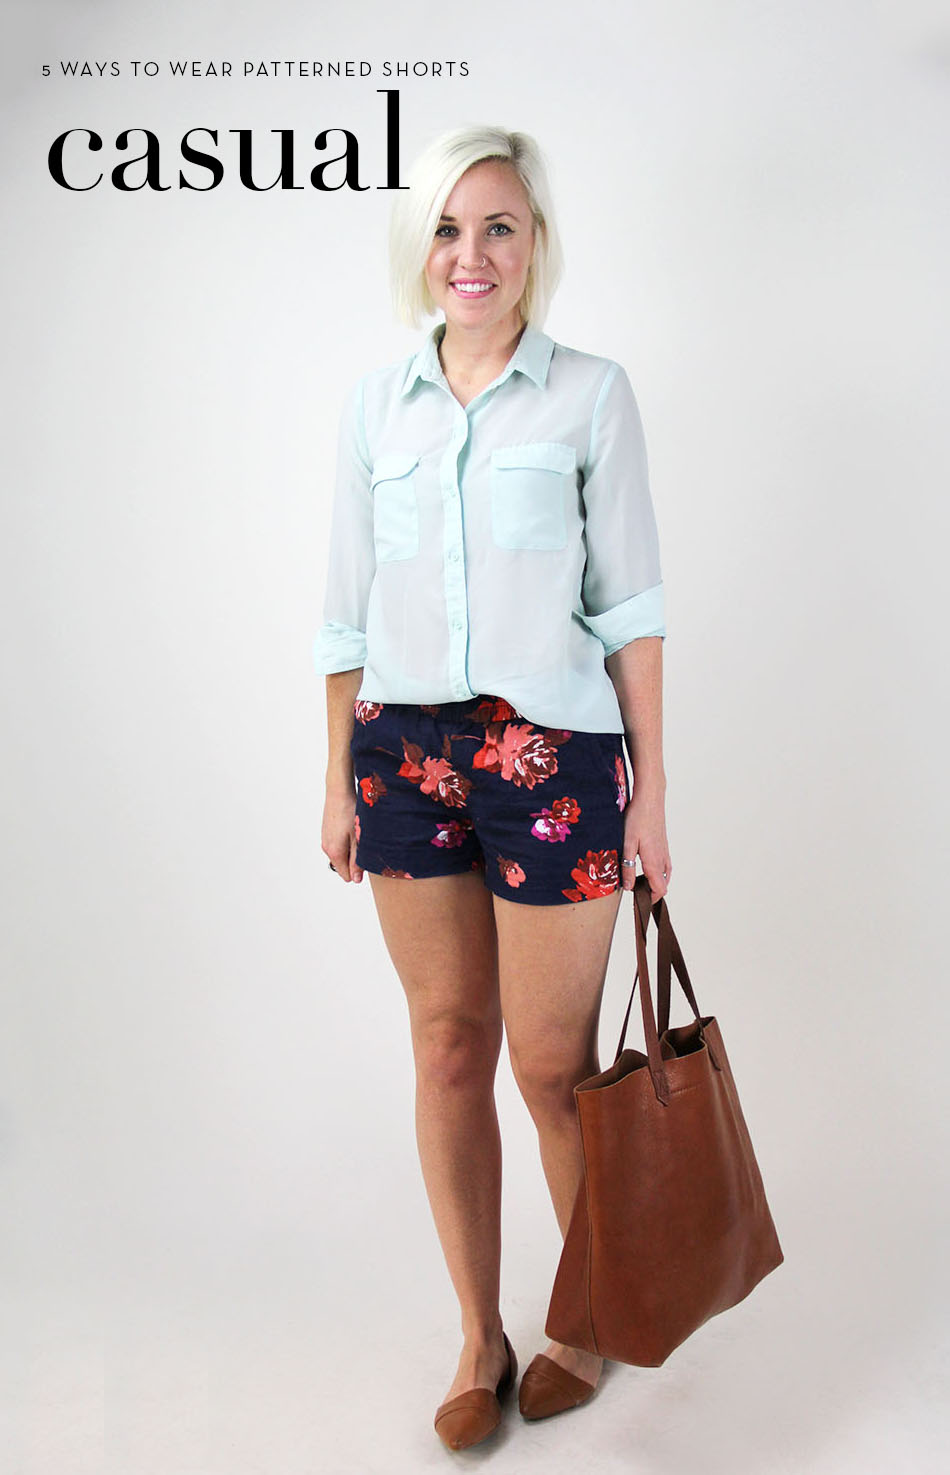 how to wear patterned shorts 2